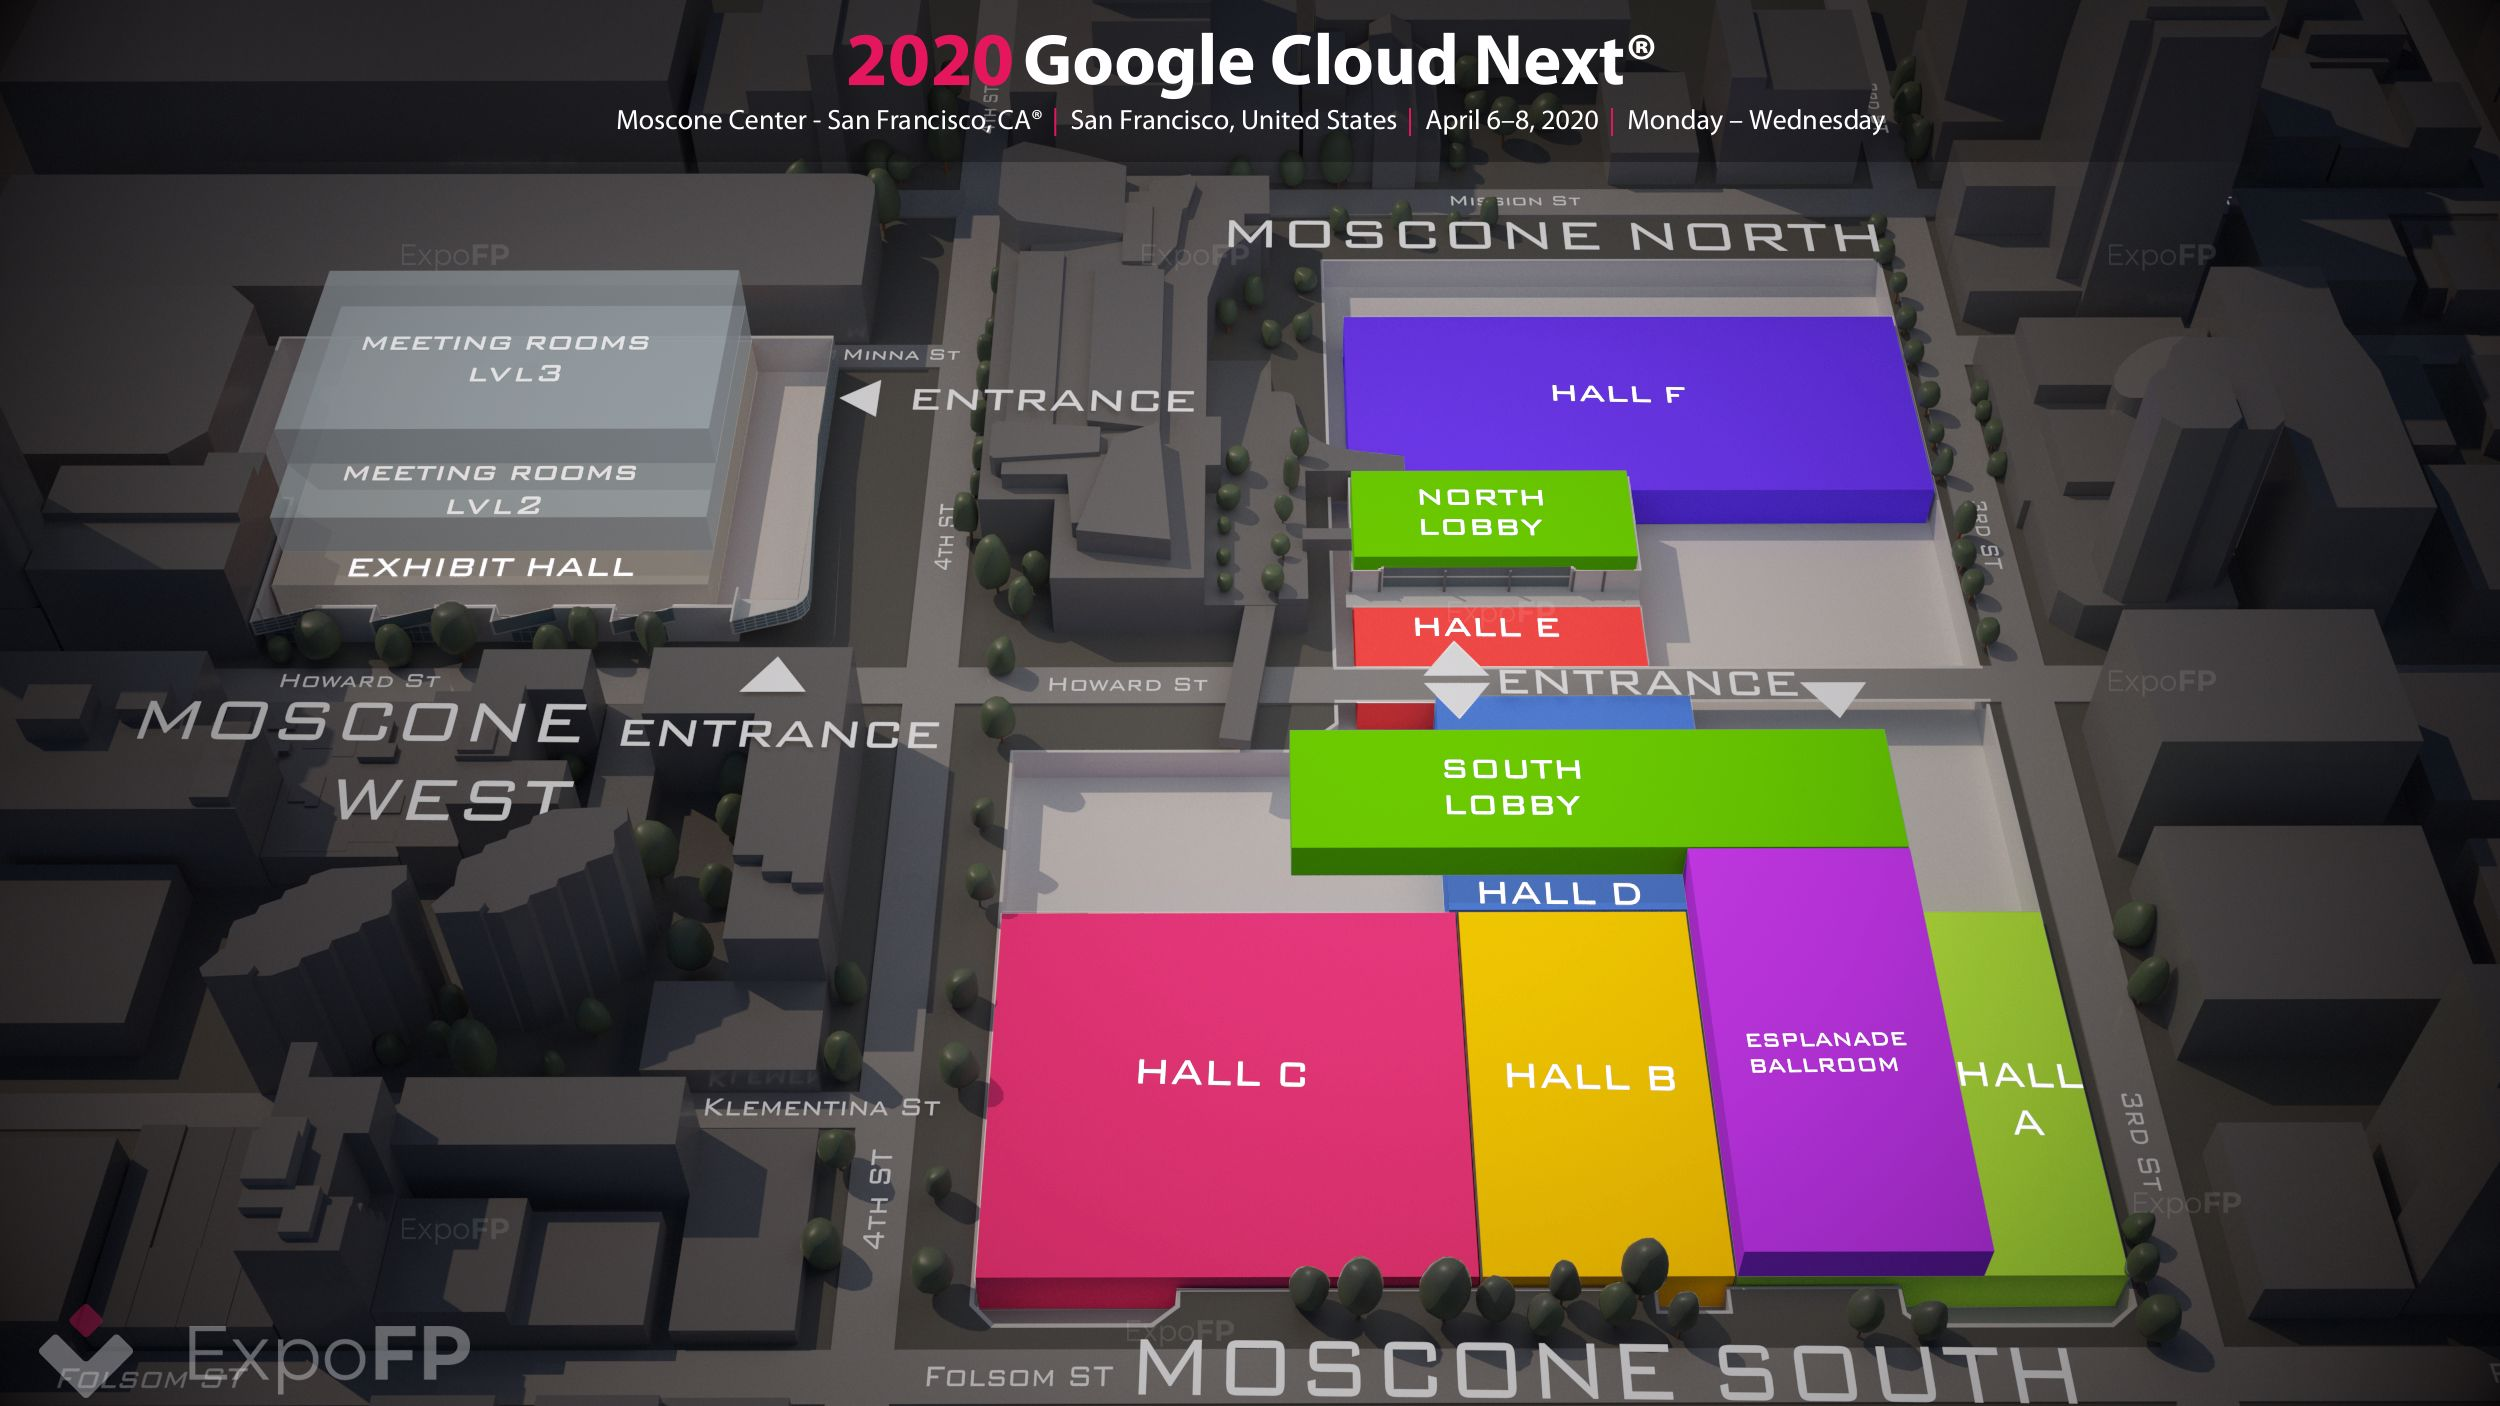 Google Cloud Next 2020 3D floor plan